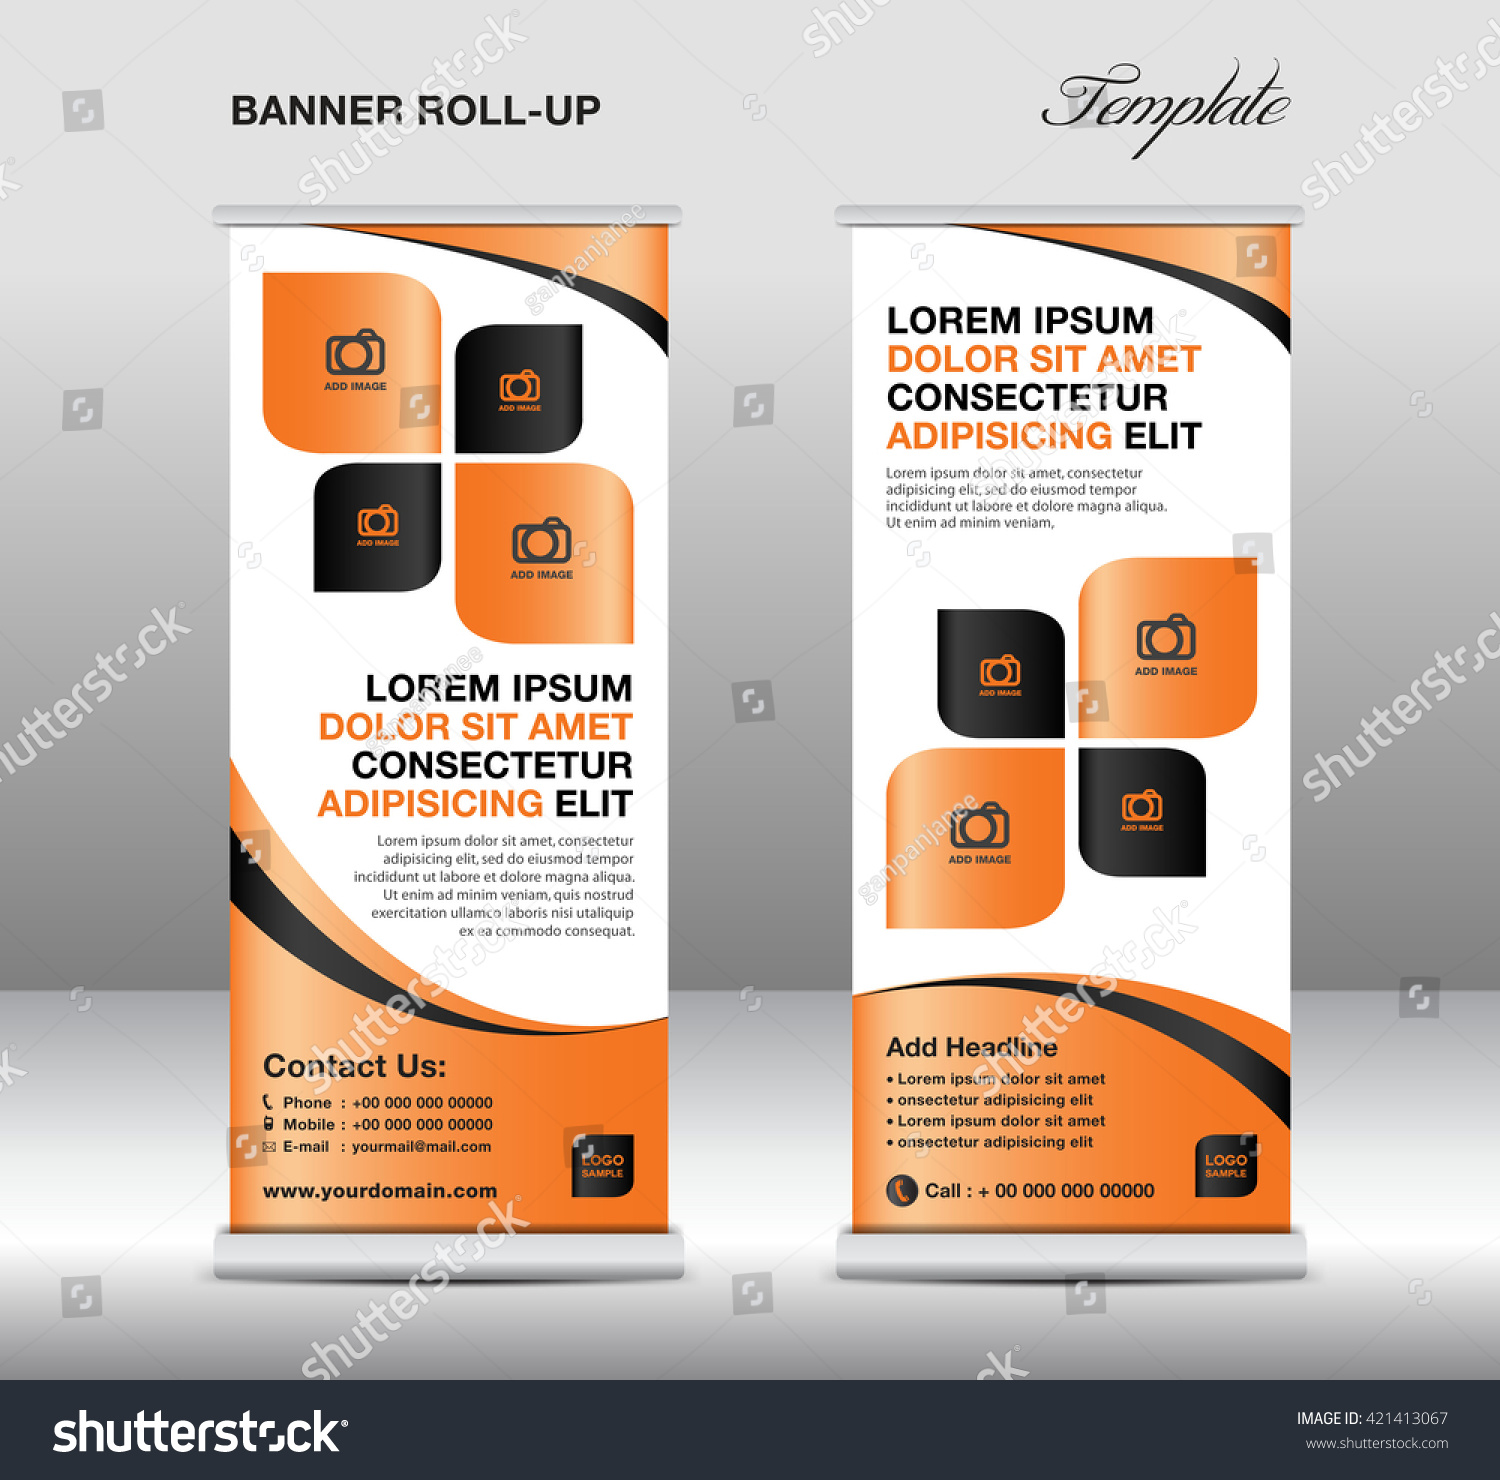 roll up banner template stand design banner template orange roll up banner template stand design banner template orange banner advertisement